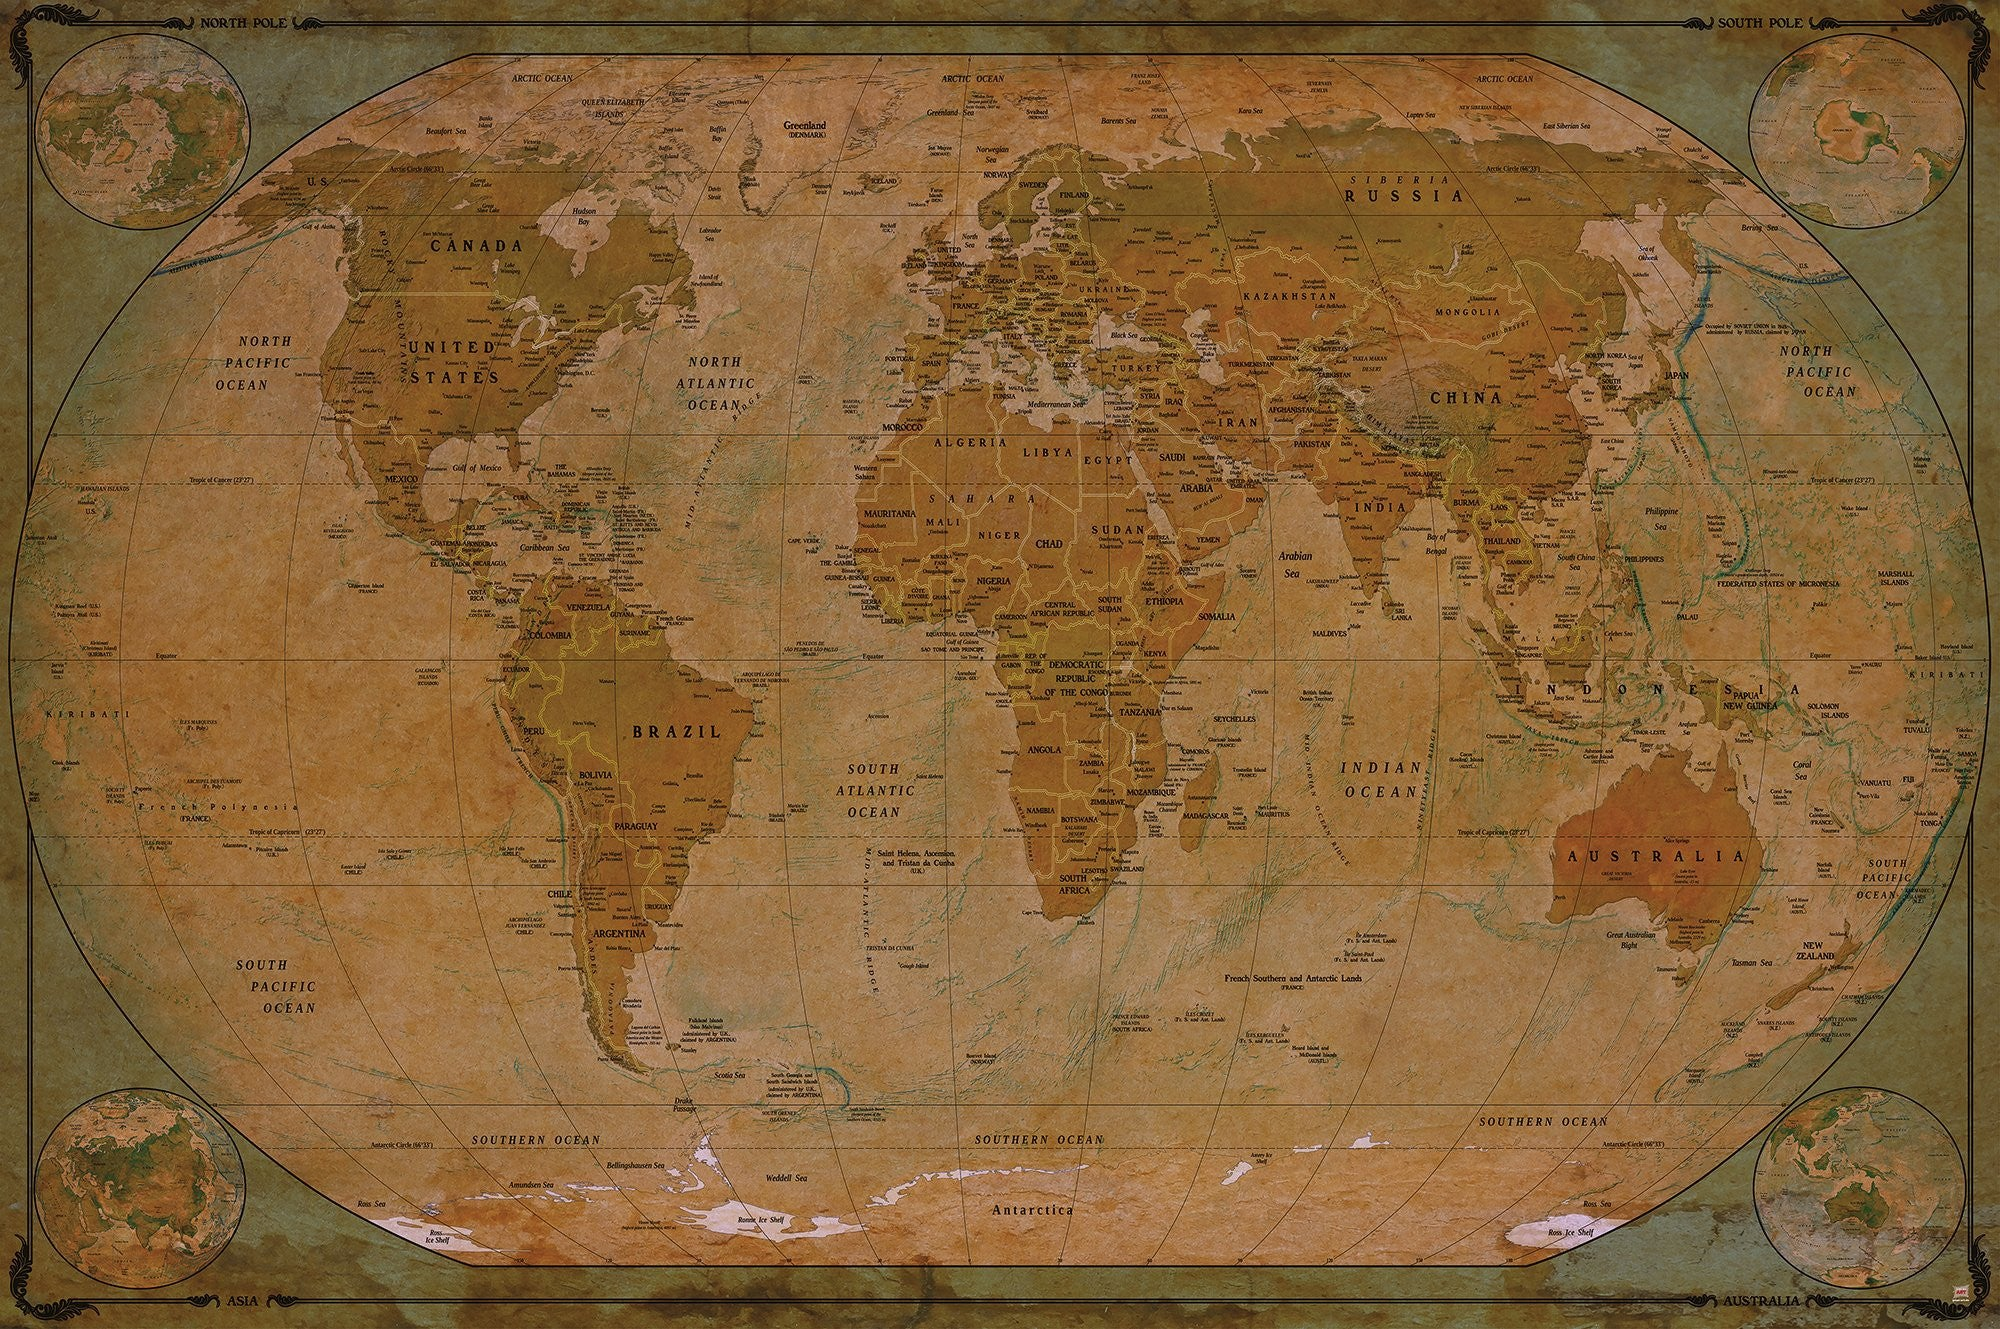 World map atlas globus historic world map photo wallpaper world map atlas globus historic world map photo wallpaper vintage retro motif xxl gumiabroncs